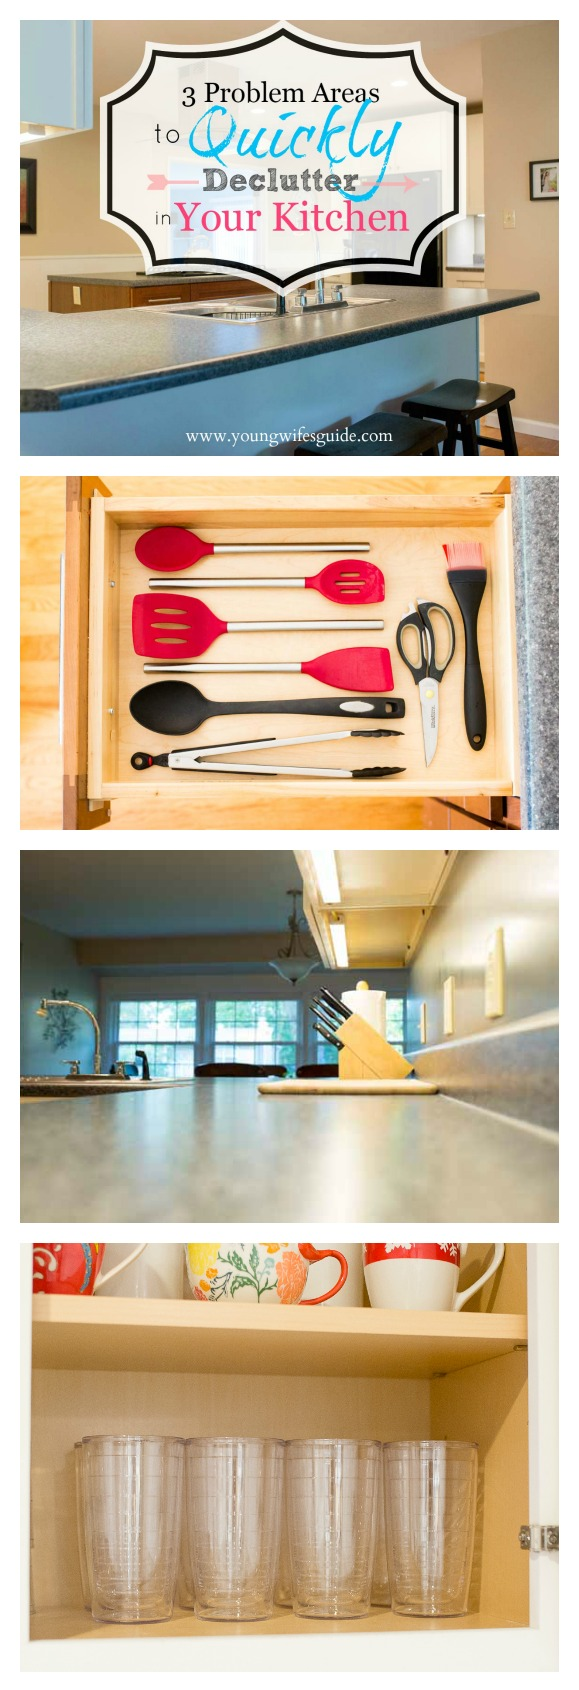 3 problem areas to quickly declutter in your kitchen 2